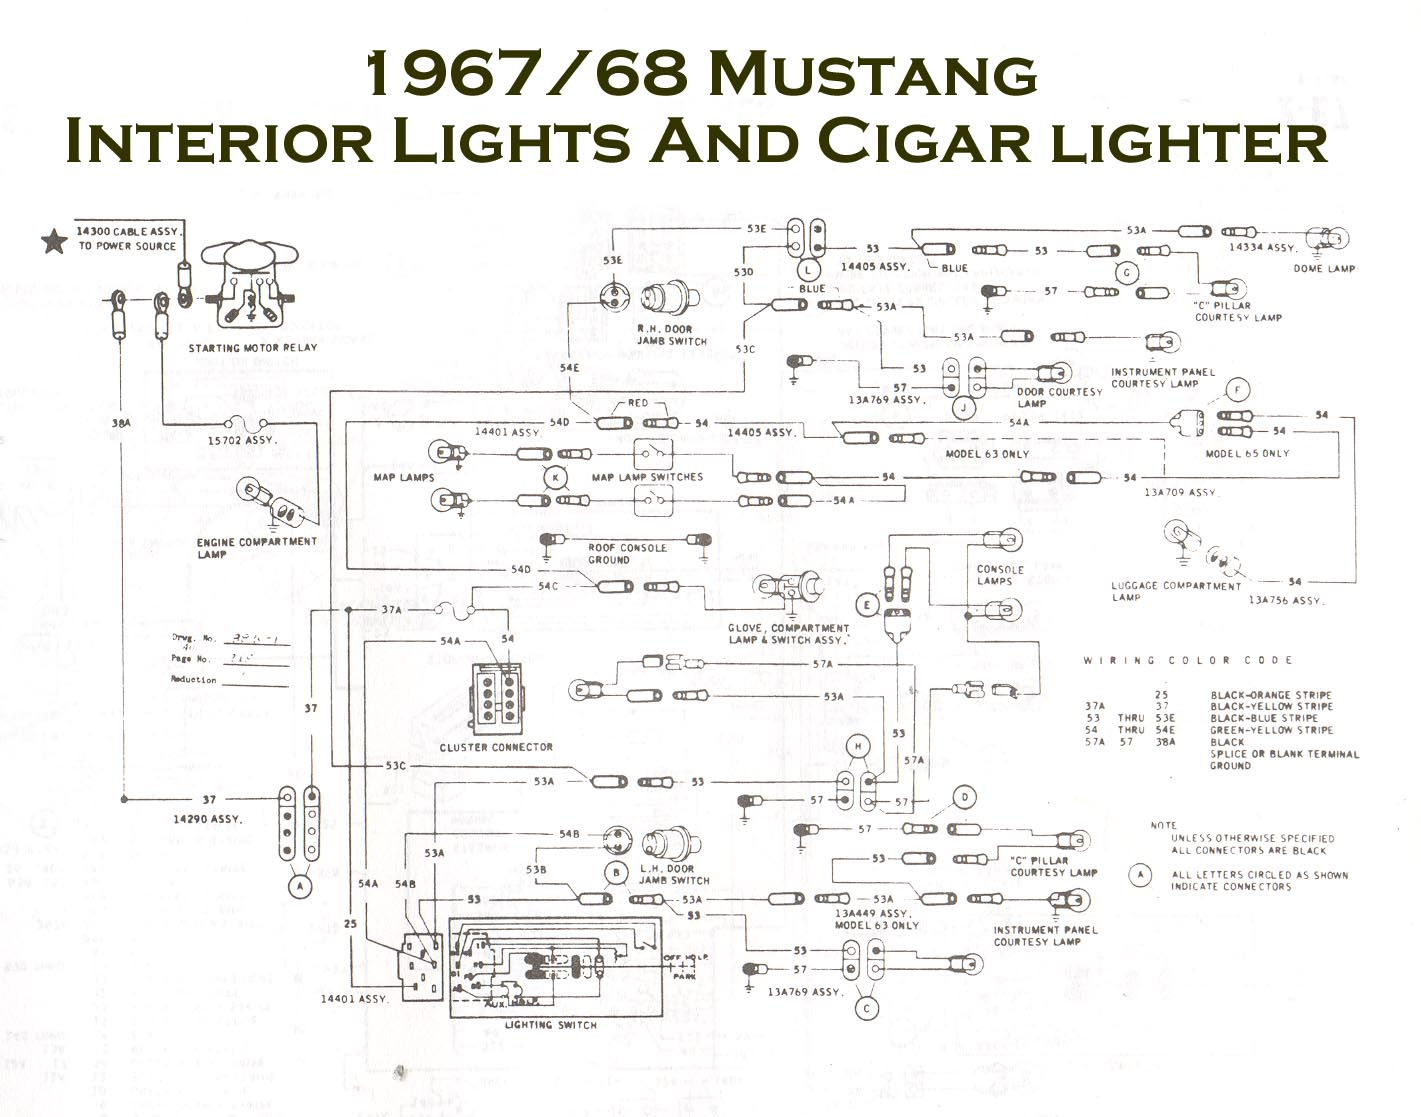 1967 68_console_wiring_diagram vintage mustang wiring diagrams 2004 volvo s40 radio wiring diagram at mifinder.co